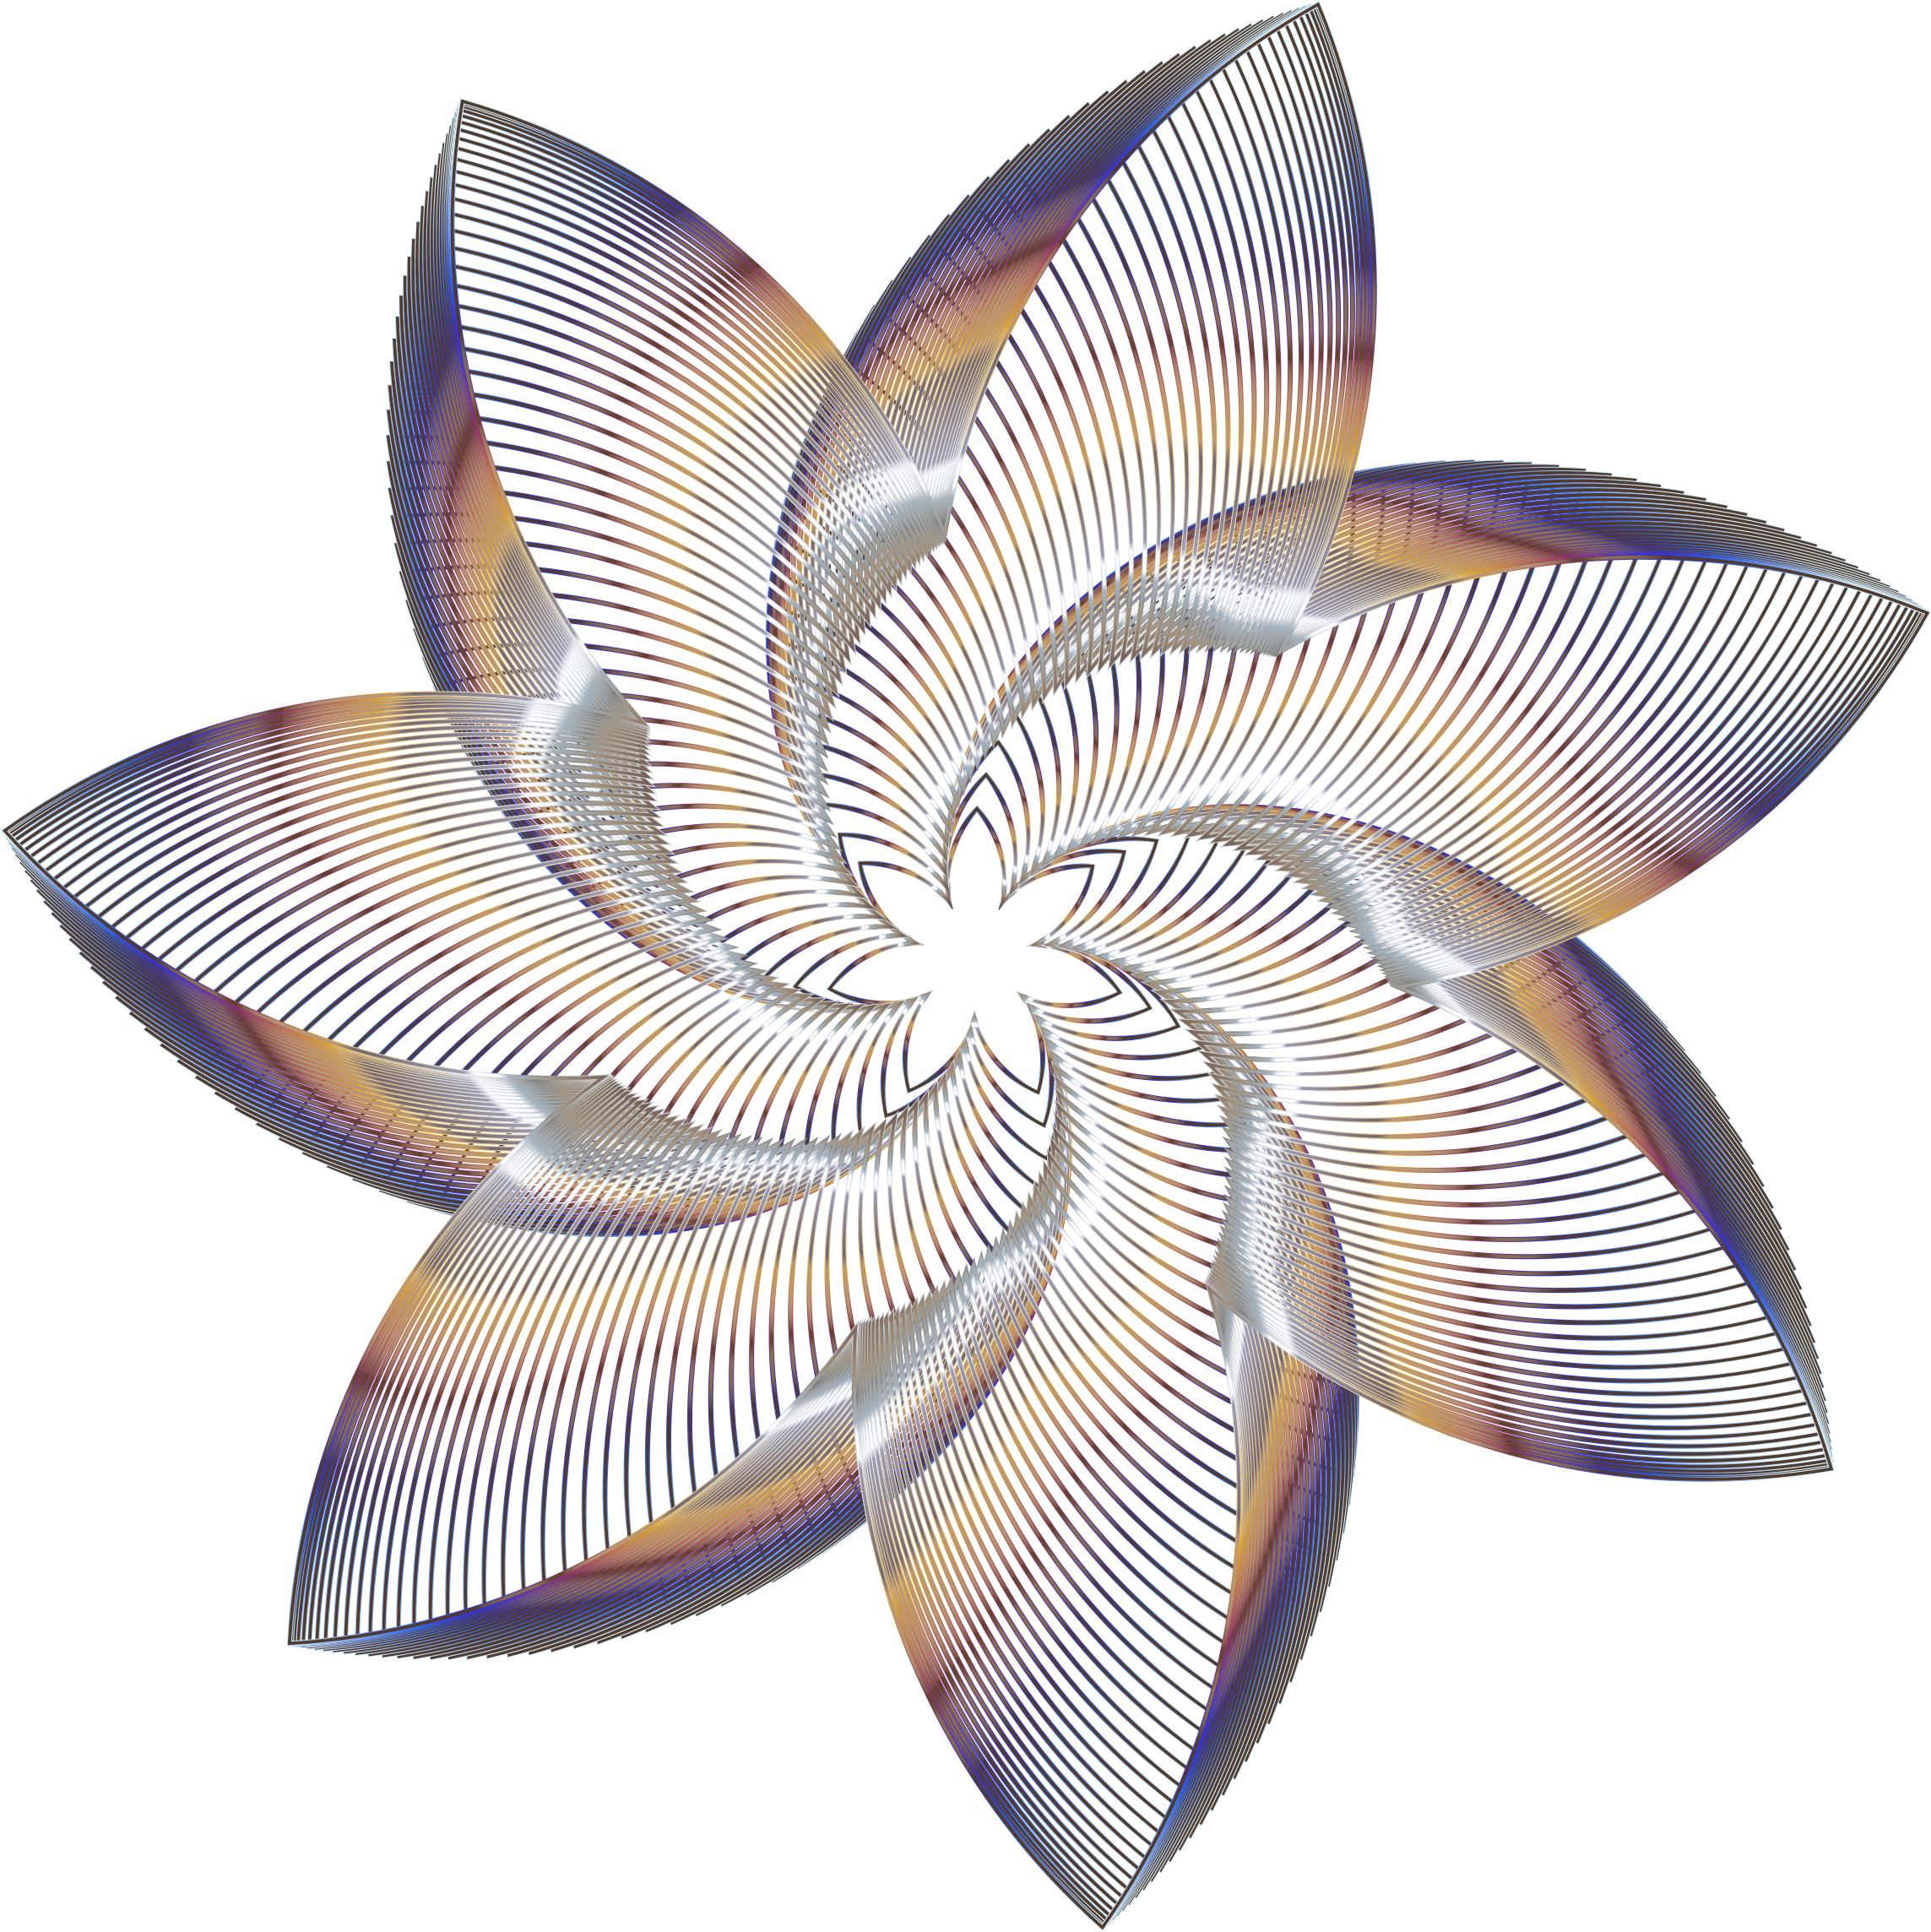 Prismatic Flower Line Art 9 No Background by GDJ